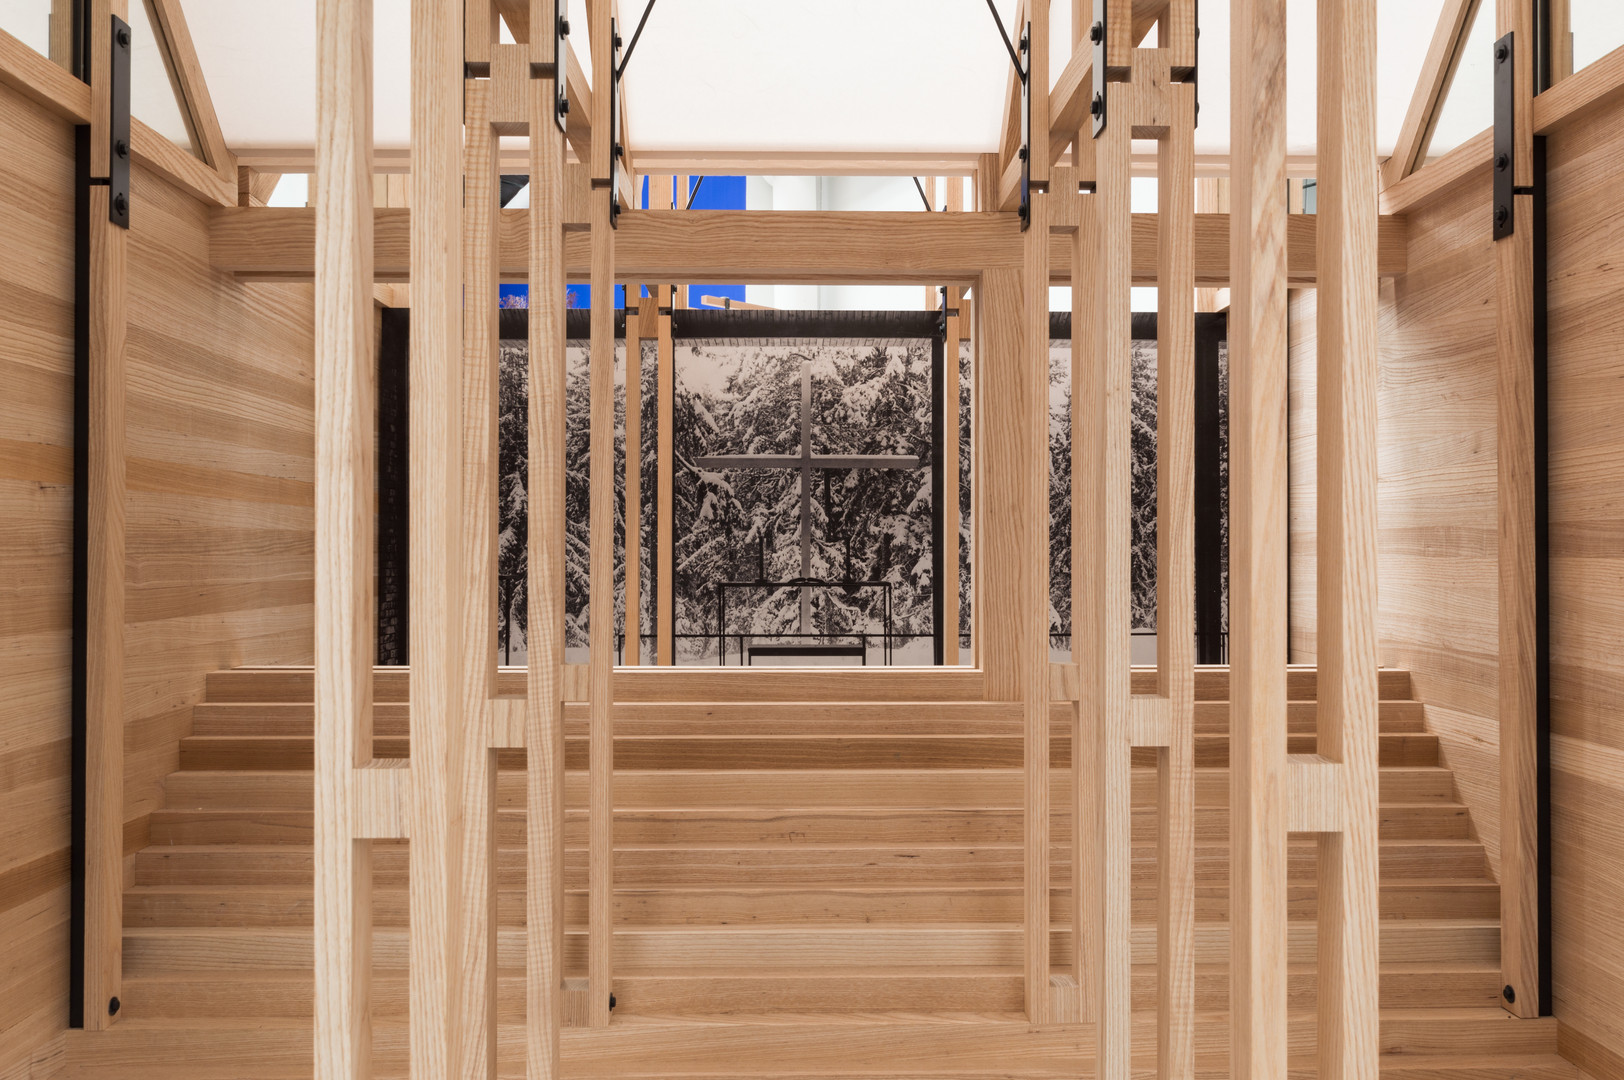 Interior of timber pavilion designed by Steve Larkin Architects at the Venice Biennale 2018